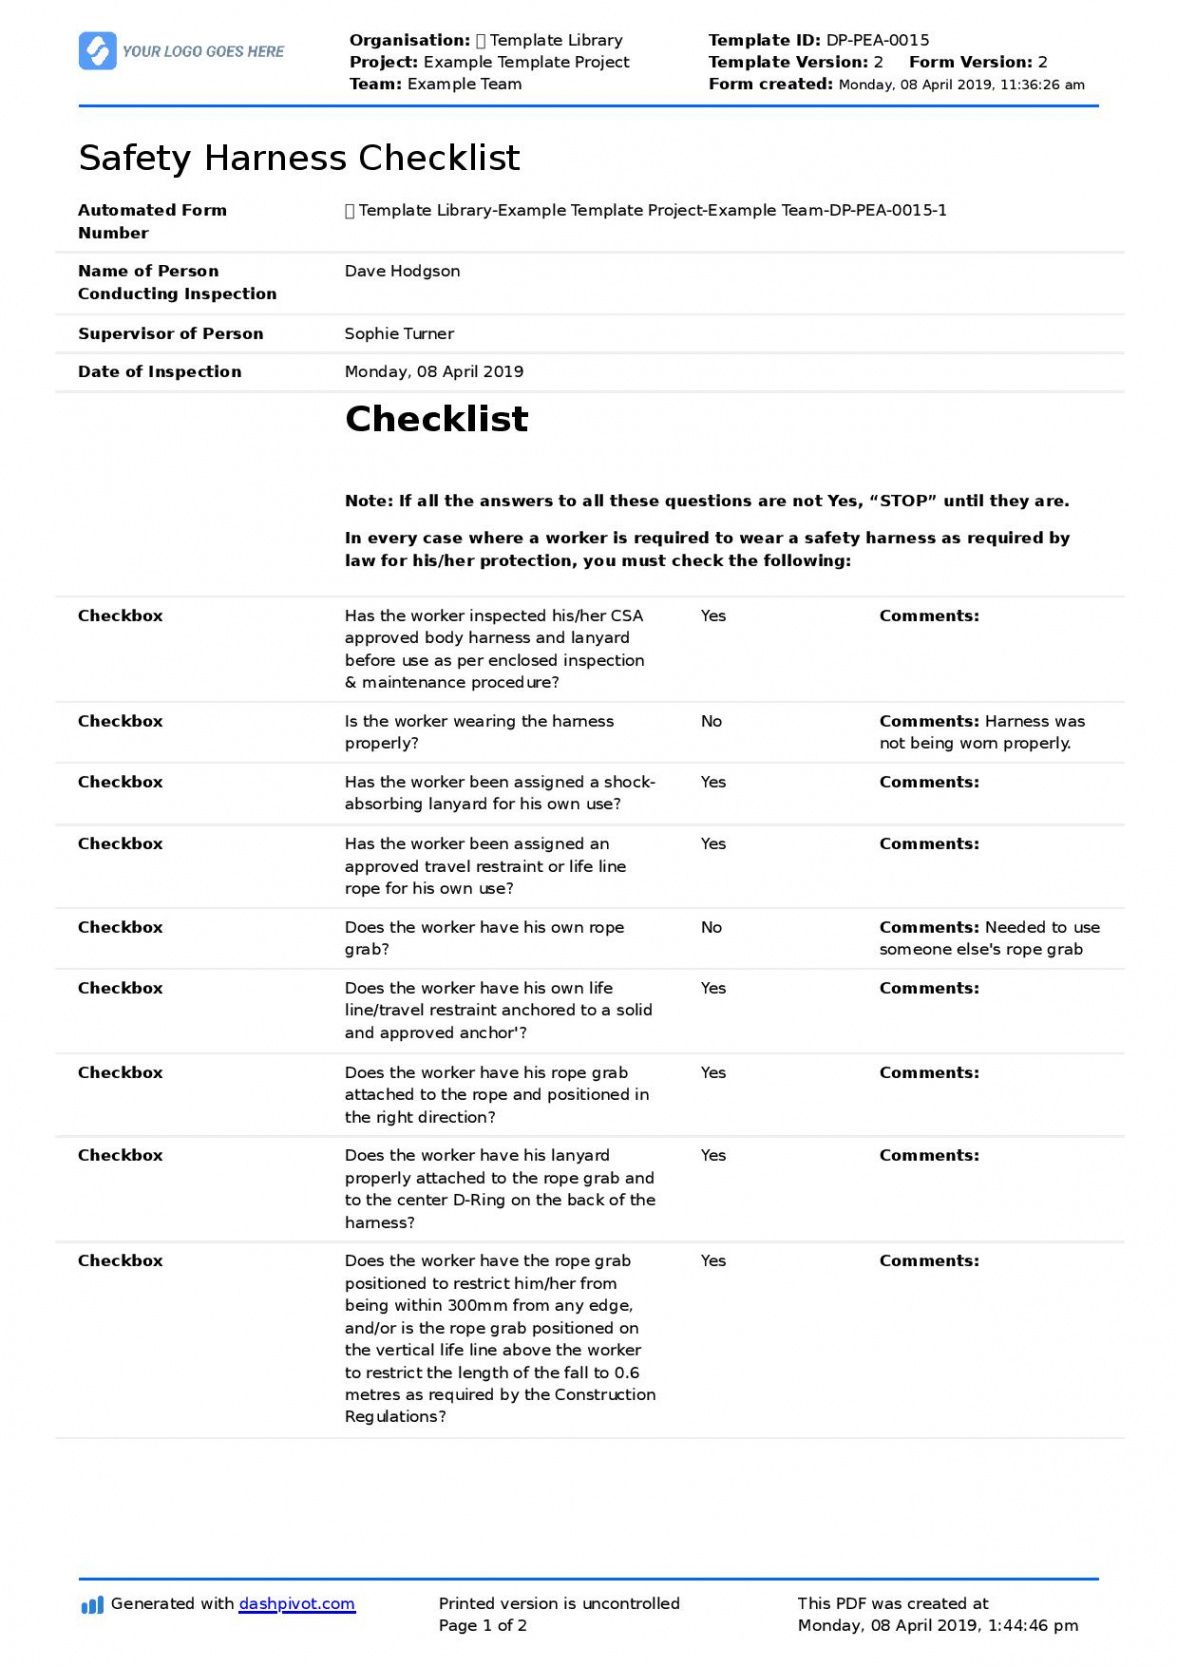 free safety harness inspection checklist template free and editable safety inspection checklist template example